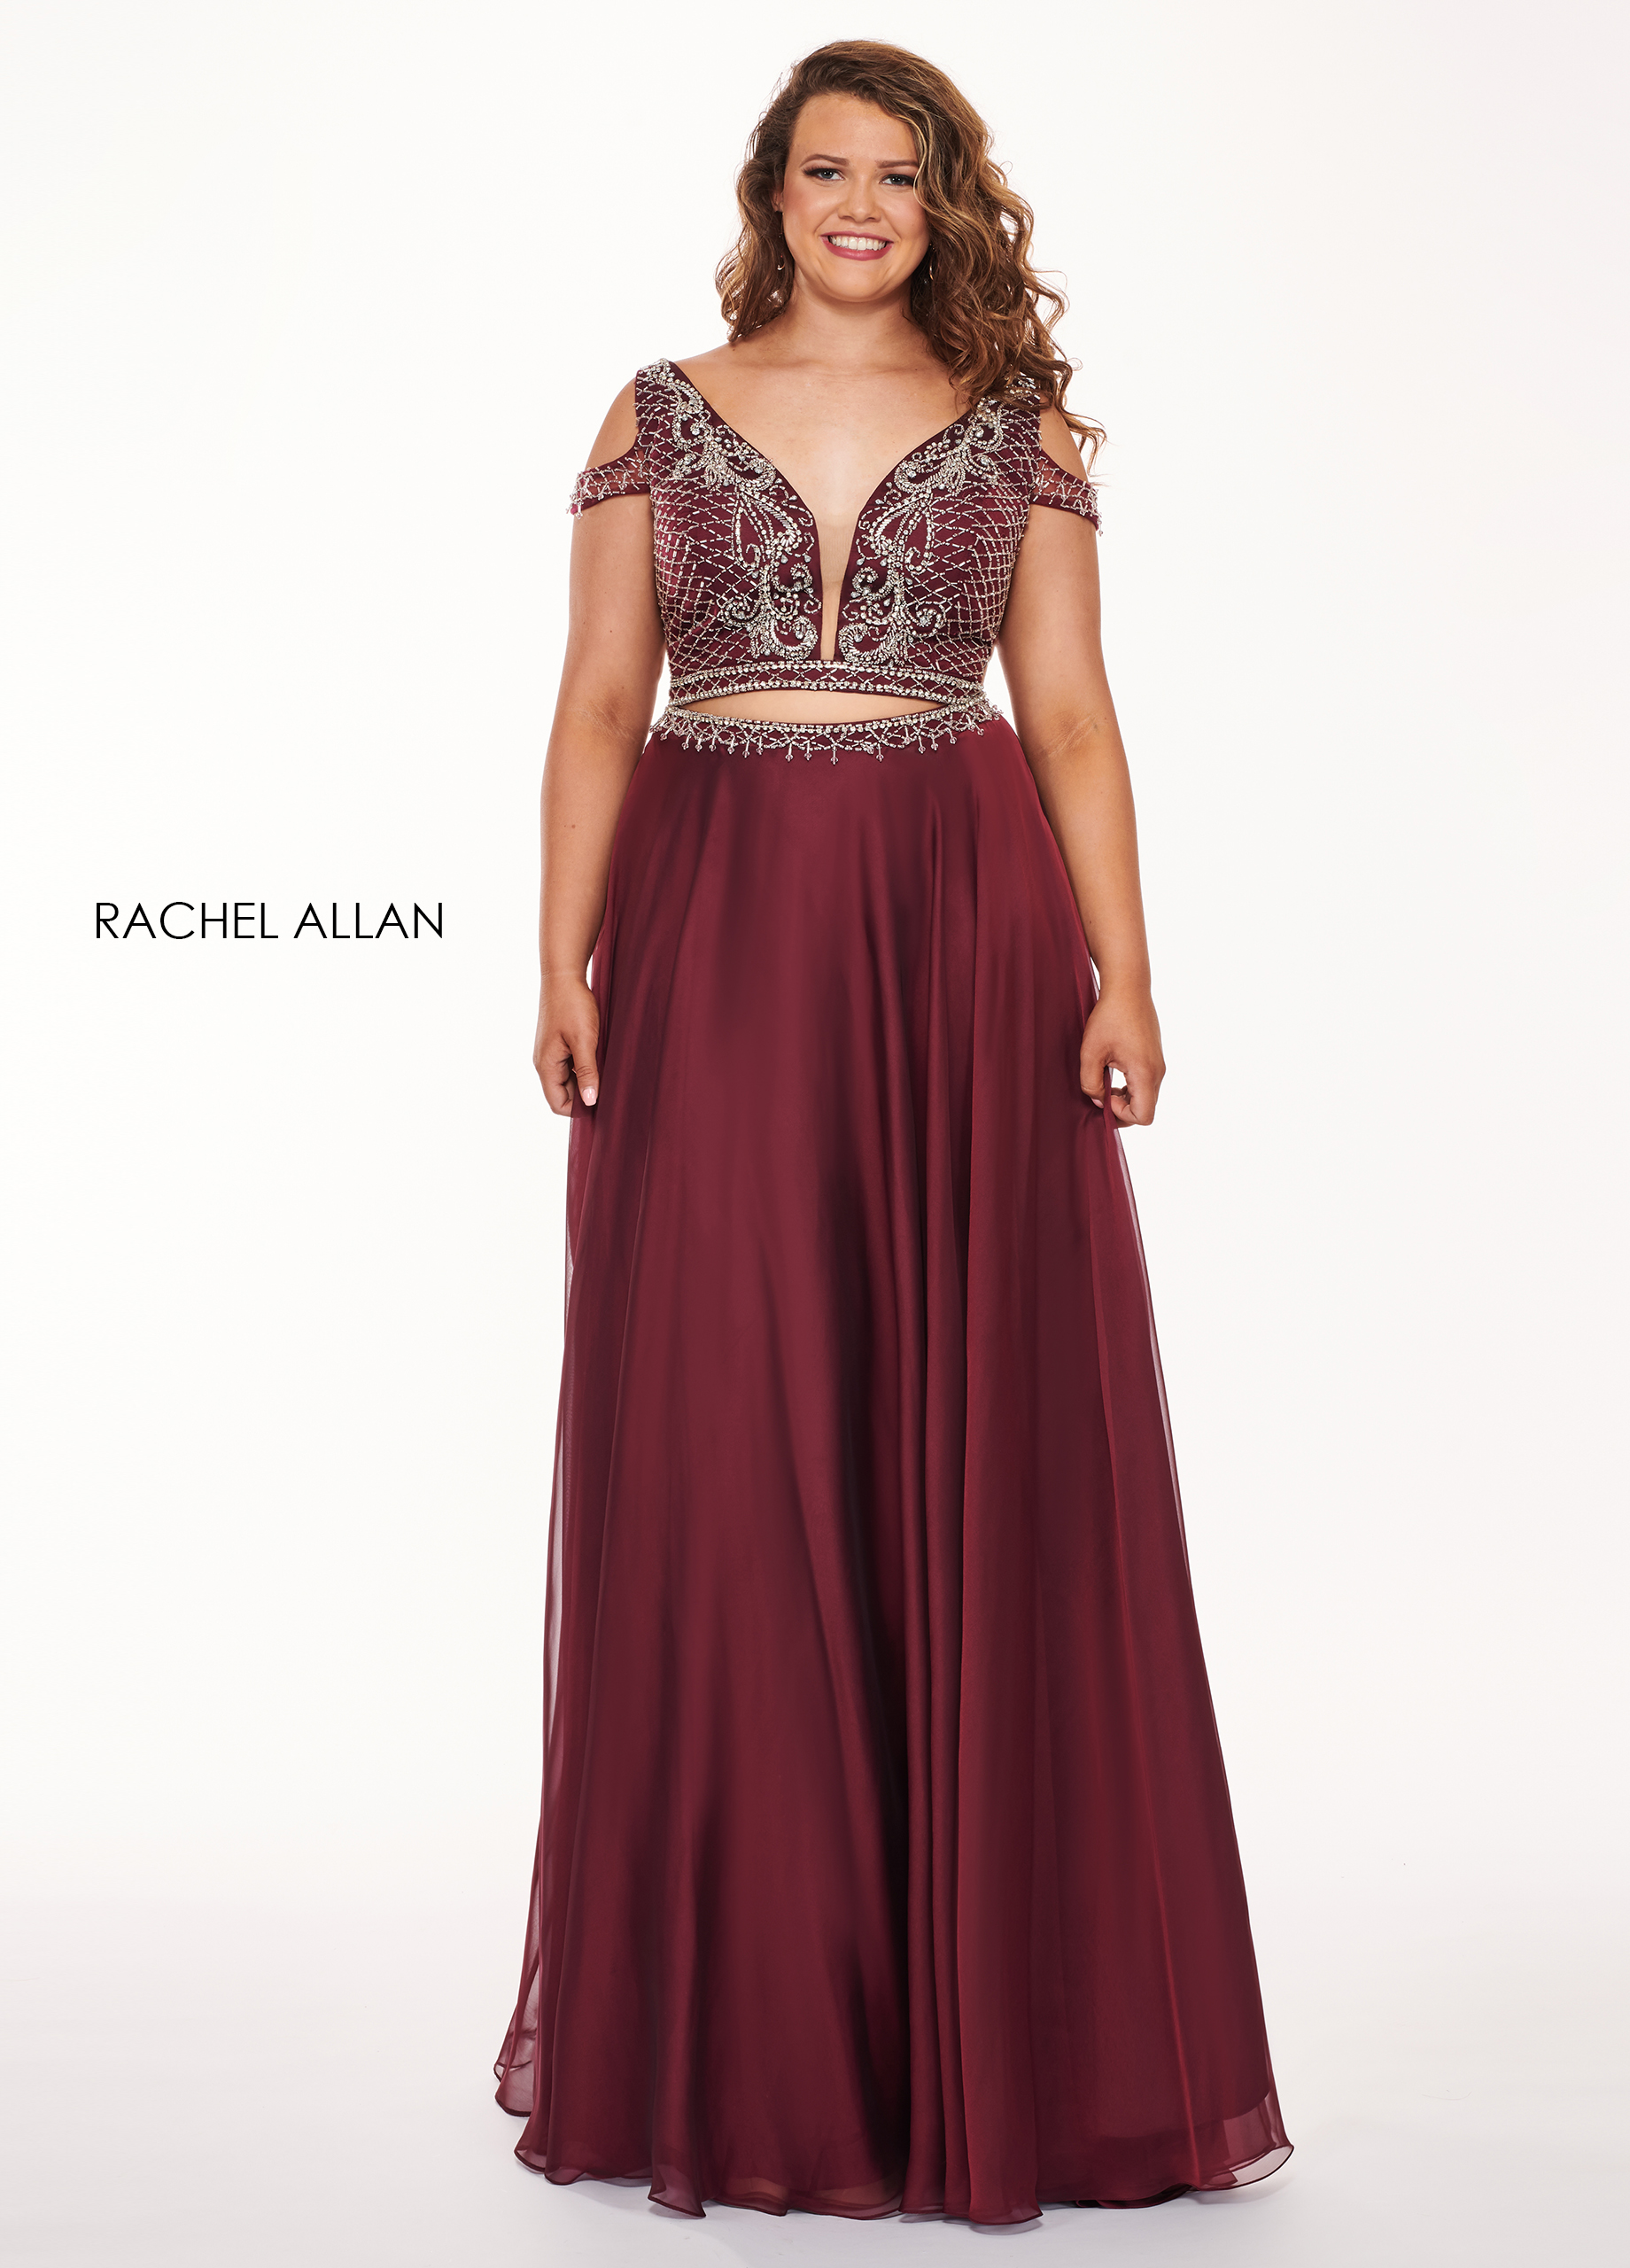 V-Neck Two-Piece Curves Dresses in Red Color | Style - 6693